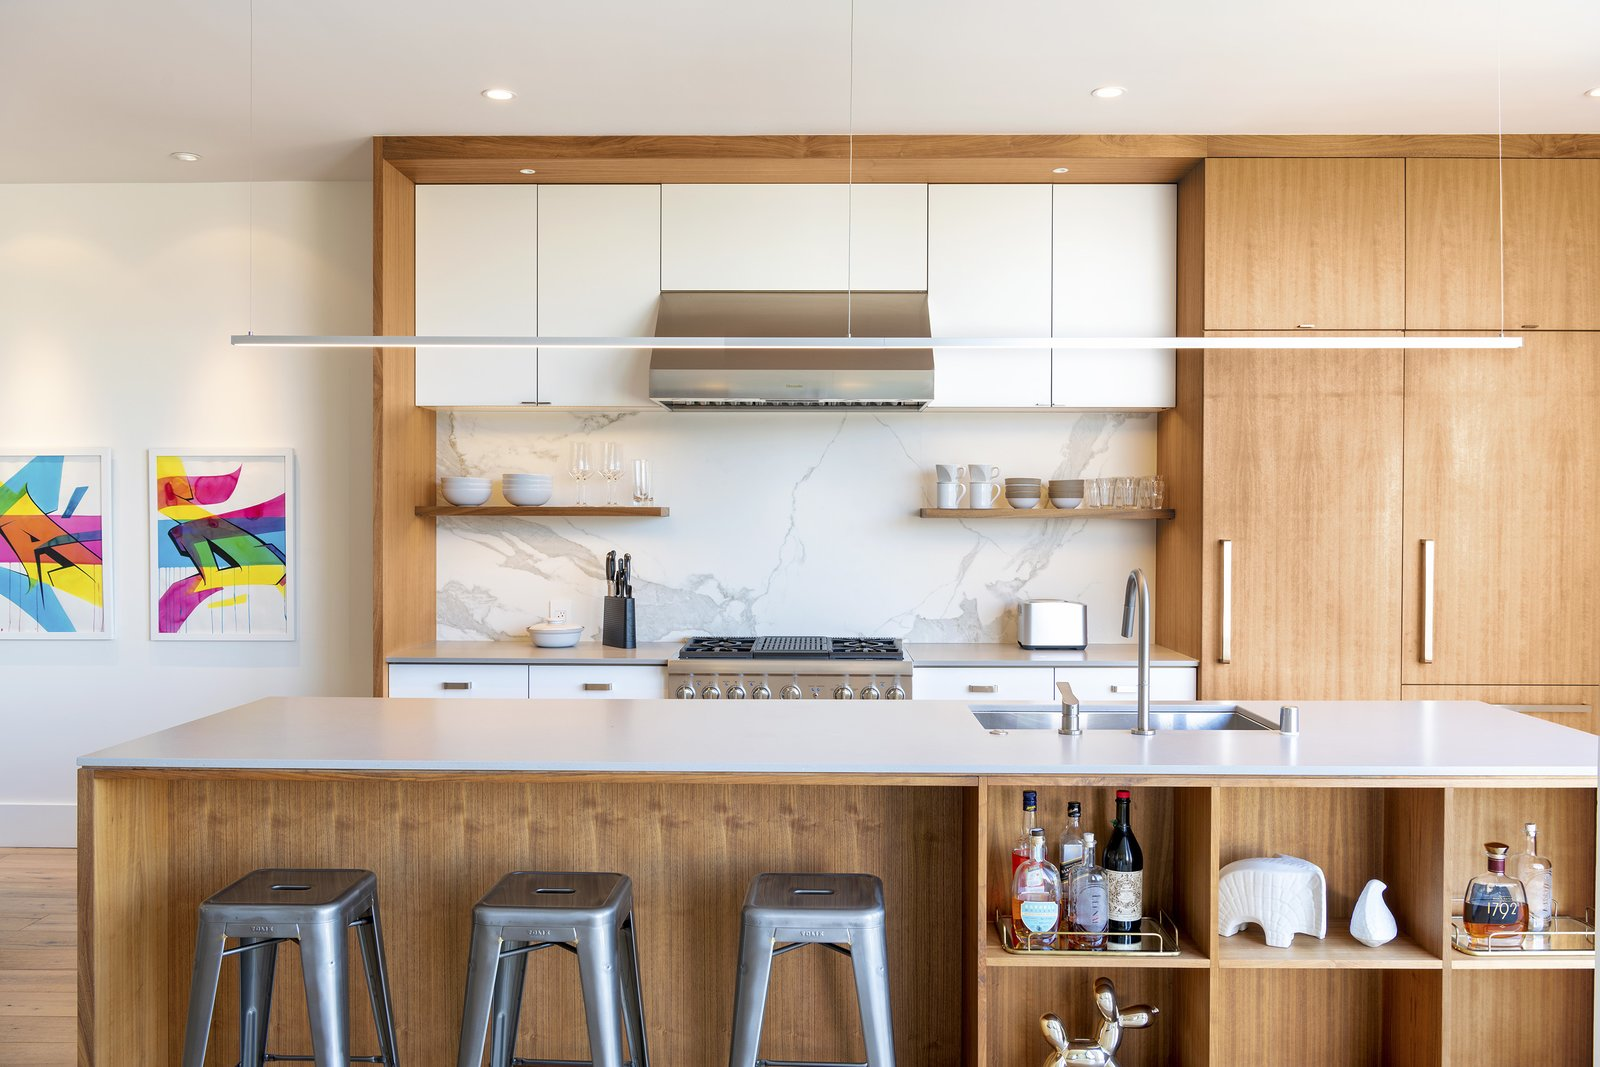 Kitchen, Concrete Counter, Light Hardwood Floor, Marble Backsplashe, Ceiling Lighting, Wood Cabinet, Refrigerator, and Drop In Sink Kitchen  Precita Park Residence by Studio Sarah Willmer, Architecture